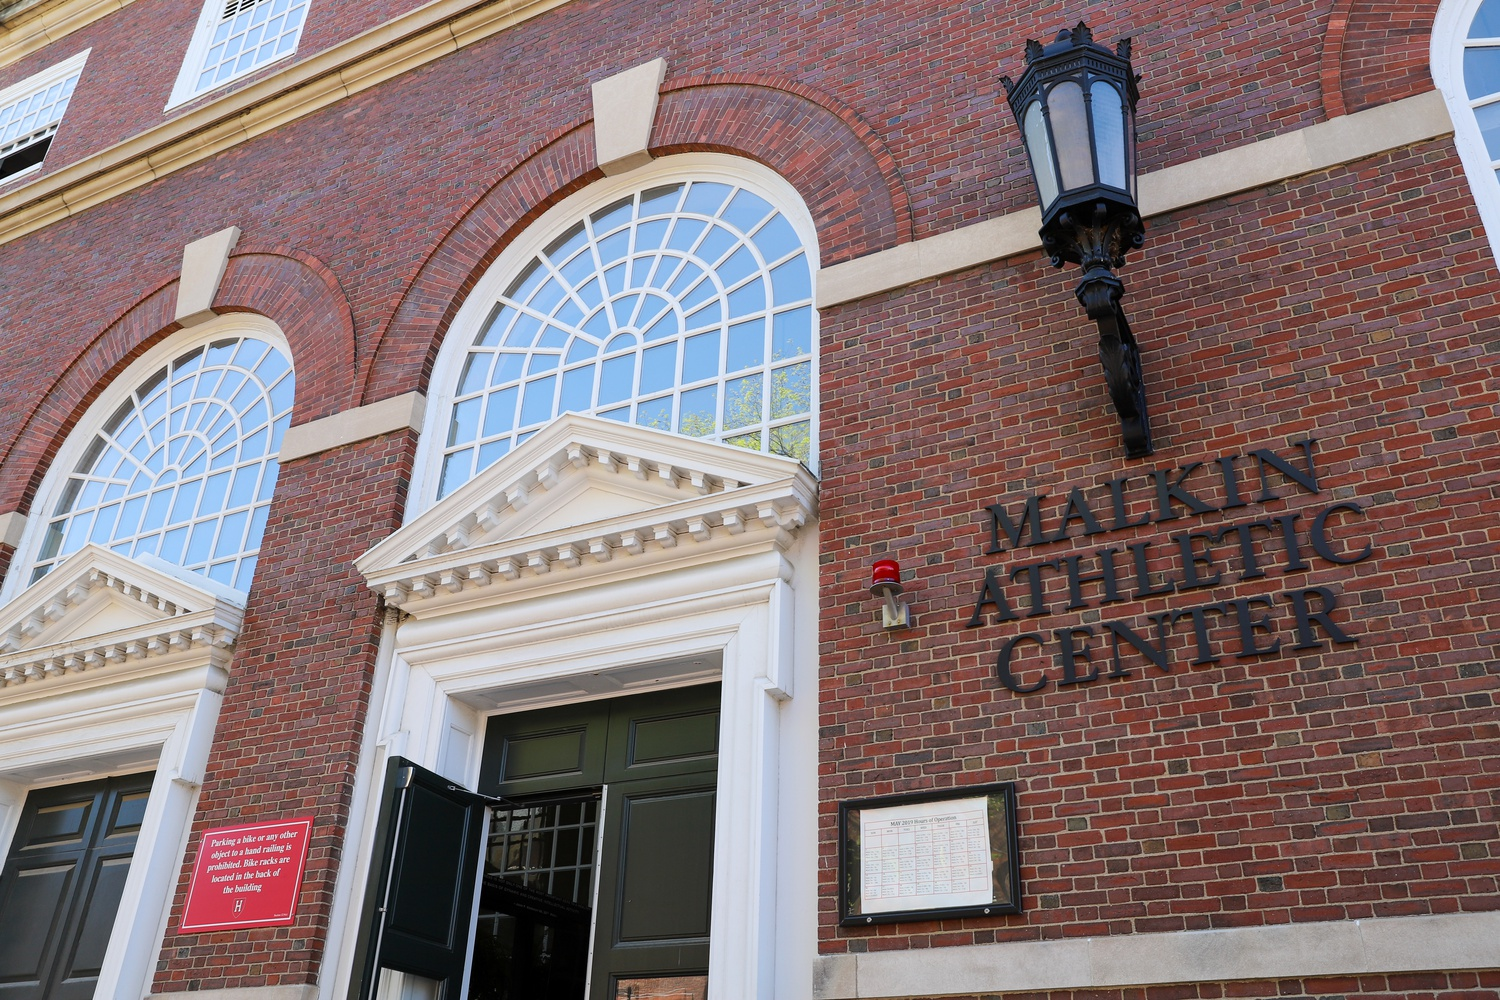 Renamed in 1985 to honor Peter L. Malkin '55, the Malkin Athletic Center is one of Harvard's primary recreational centers.